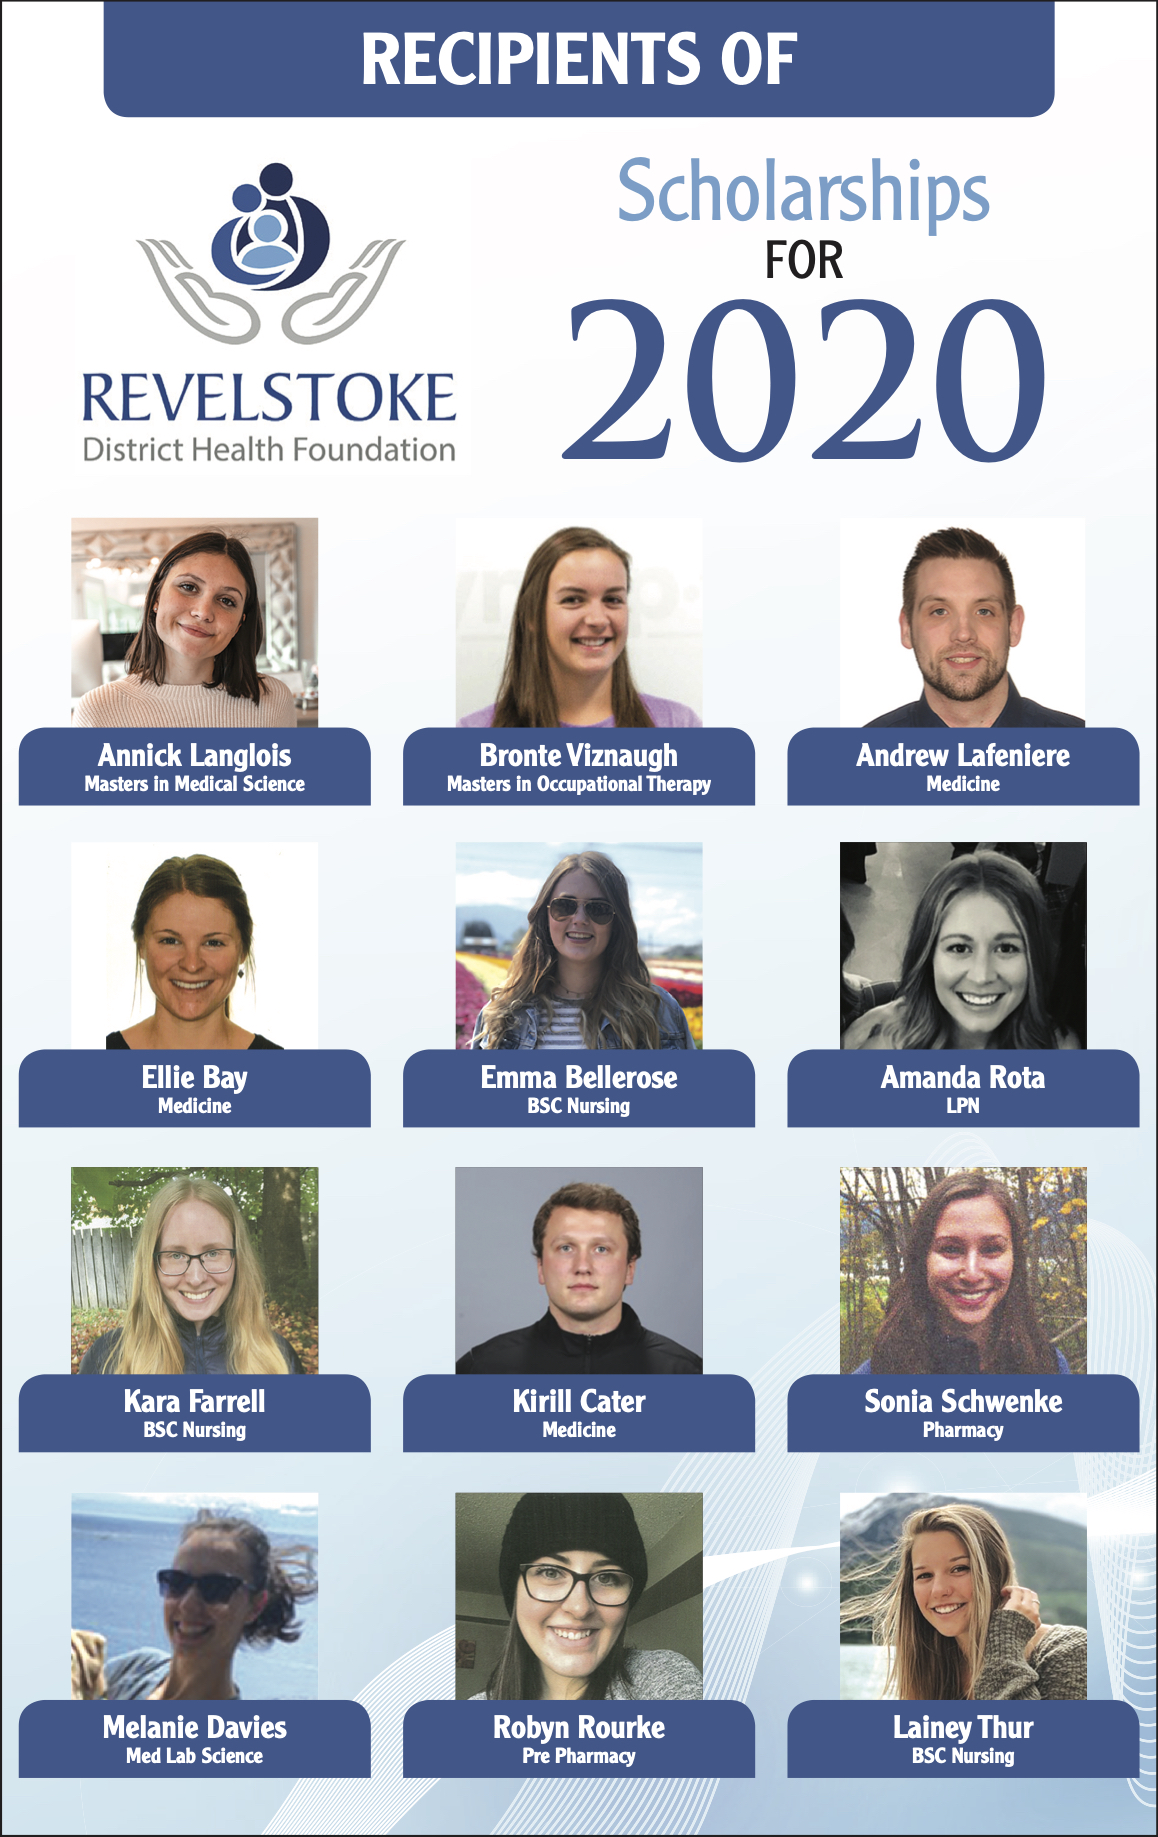 2020 Revelstoke and District Health Foundation Scholarships